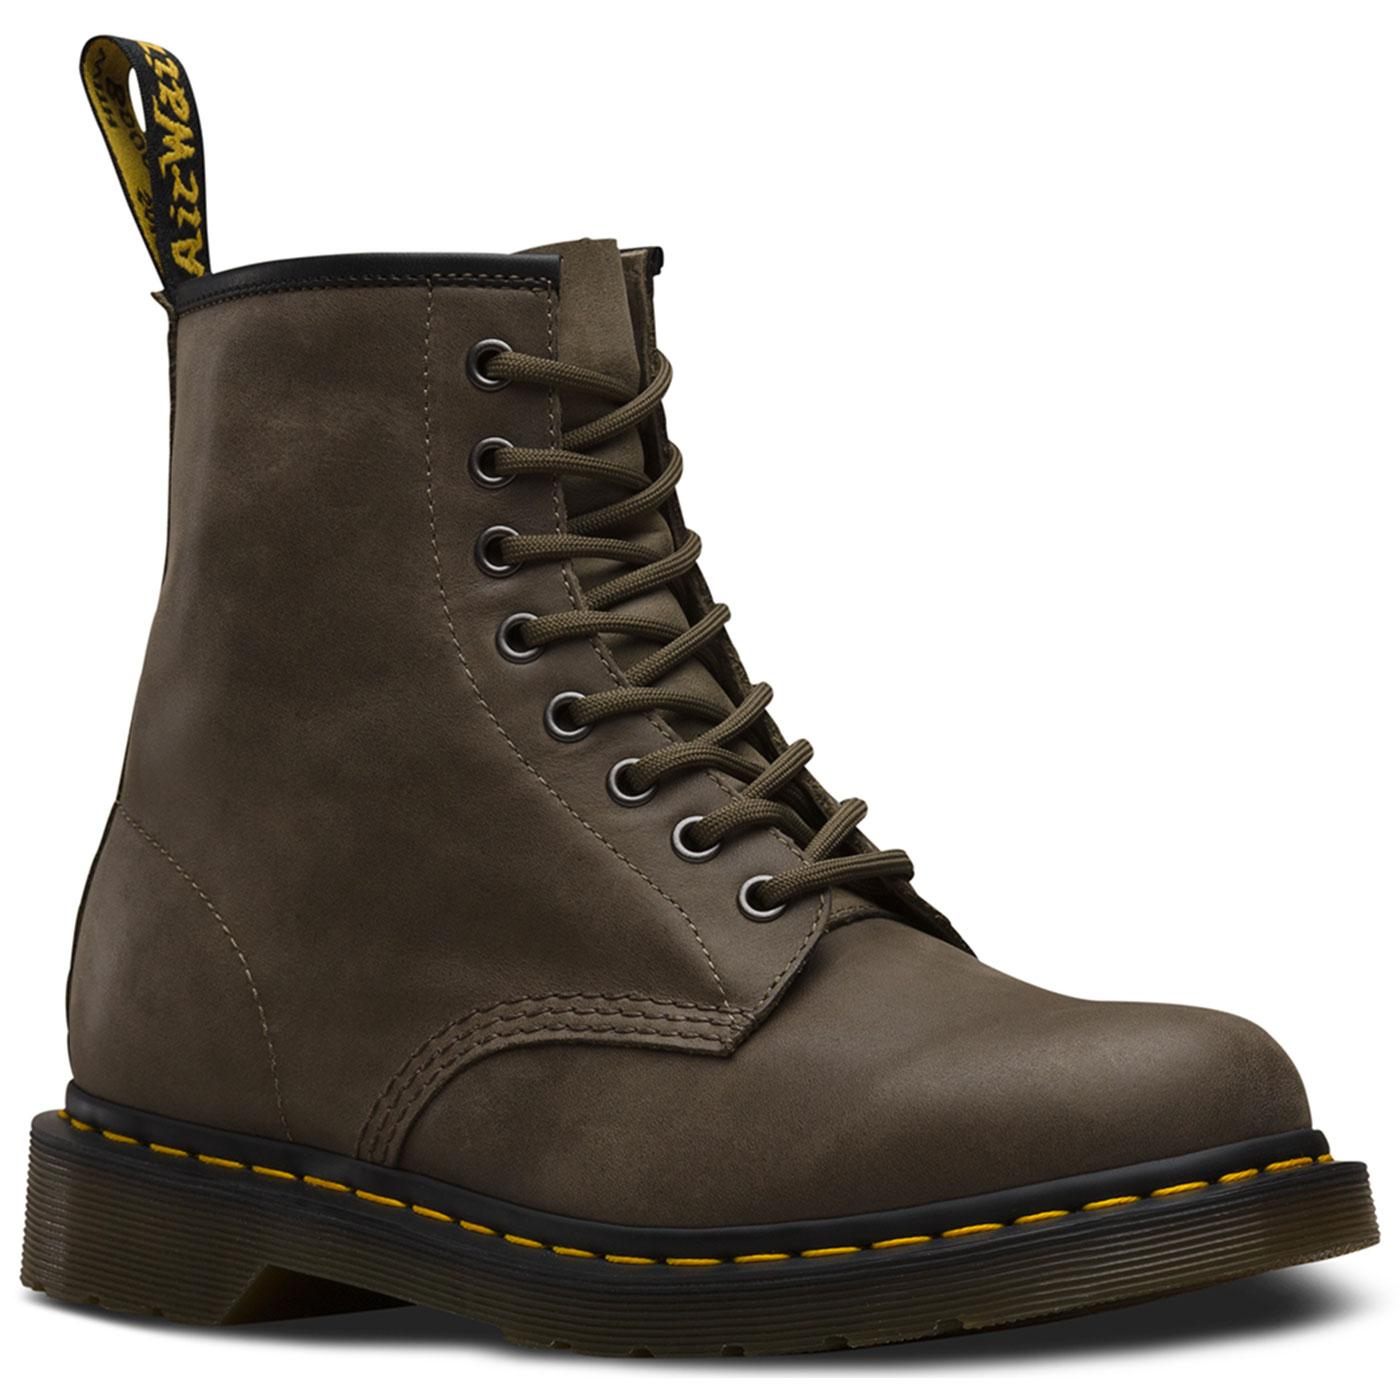 DR MARTENS Men's Retro 1460 Boots in Dusky Olive